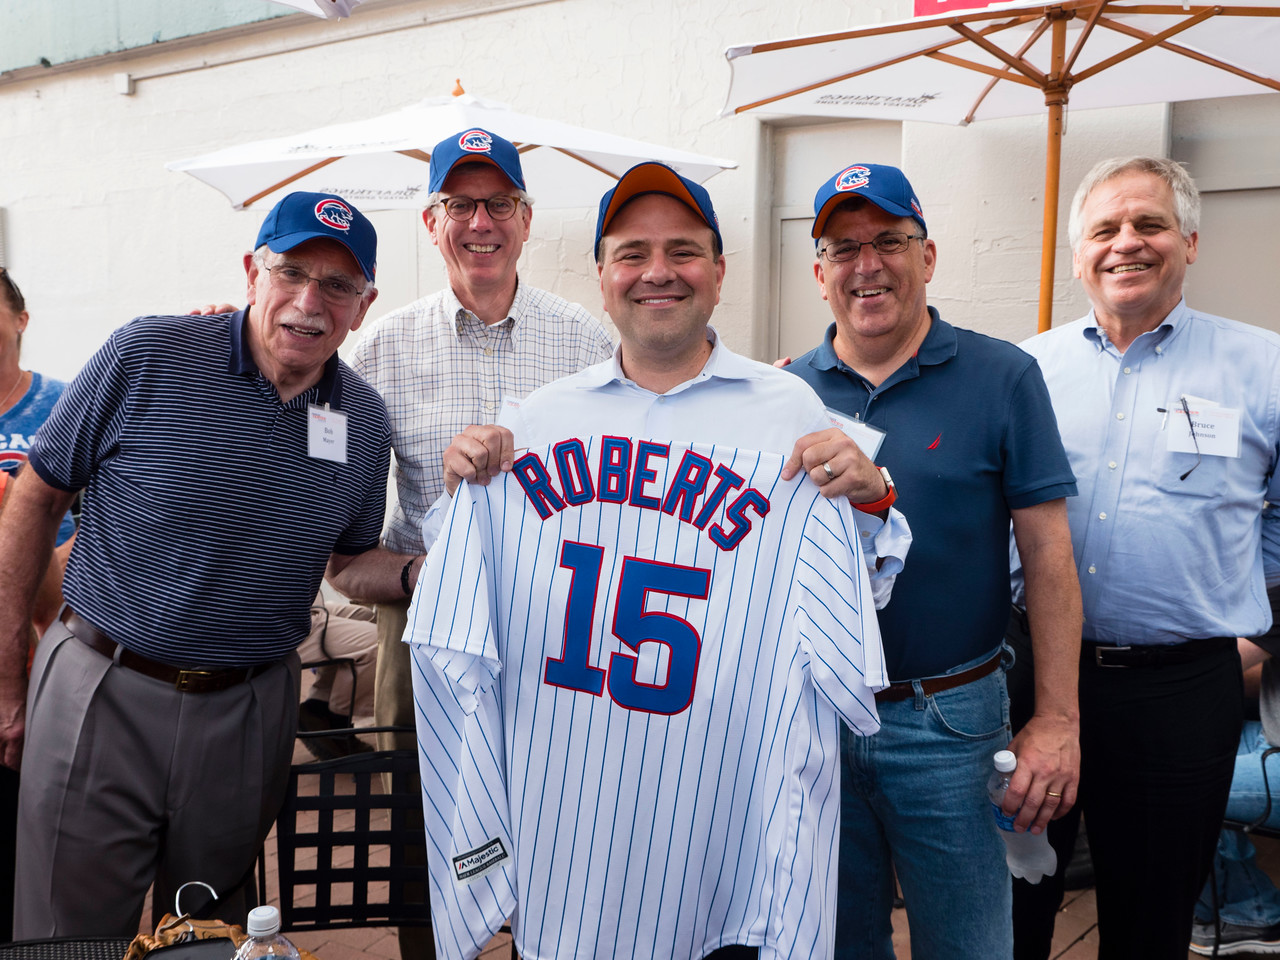 Attendees during Conquer Cancer Day at Wrigley Field